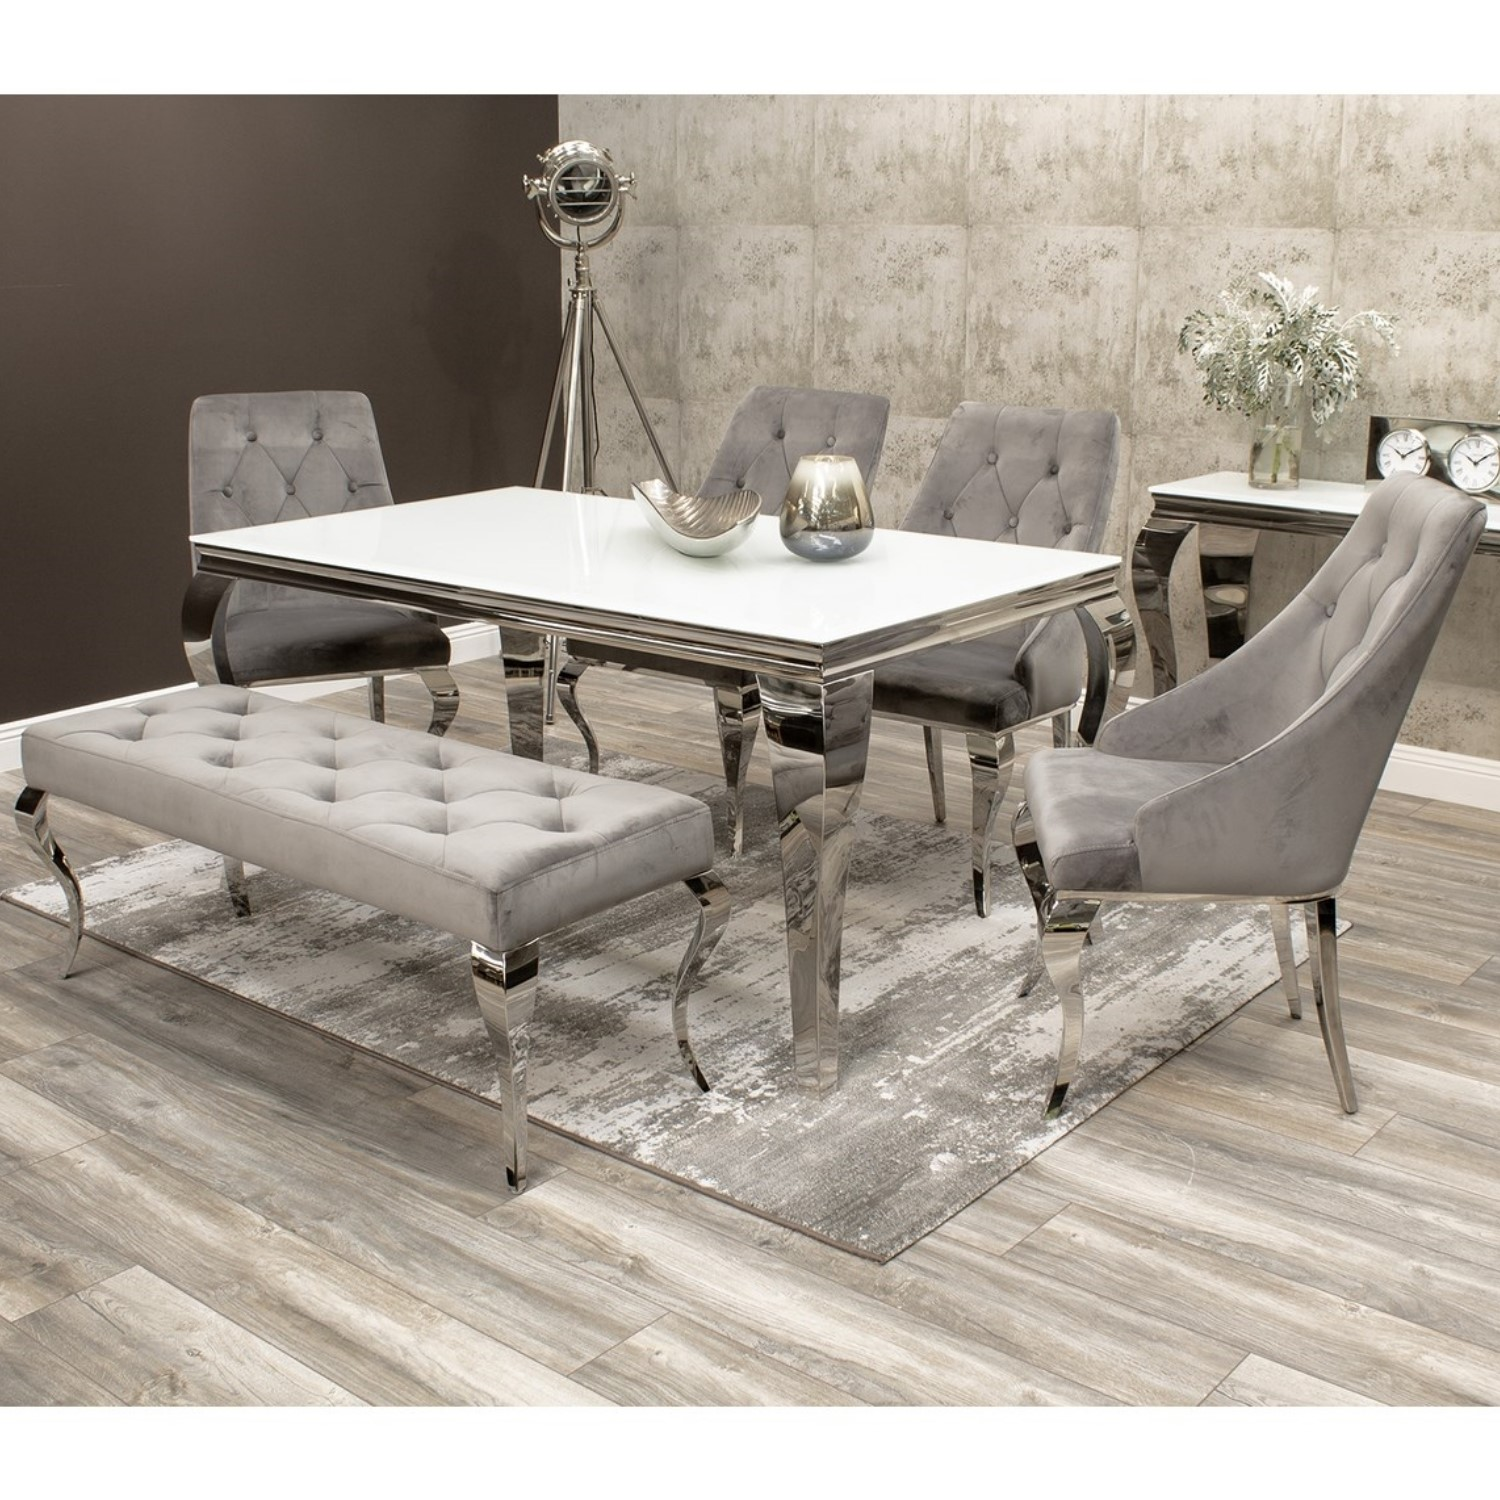 Louis White Dining Table 160cm with 4 Grey Velvet Chairs ...